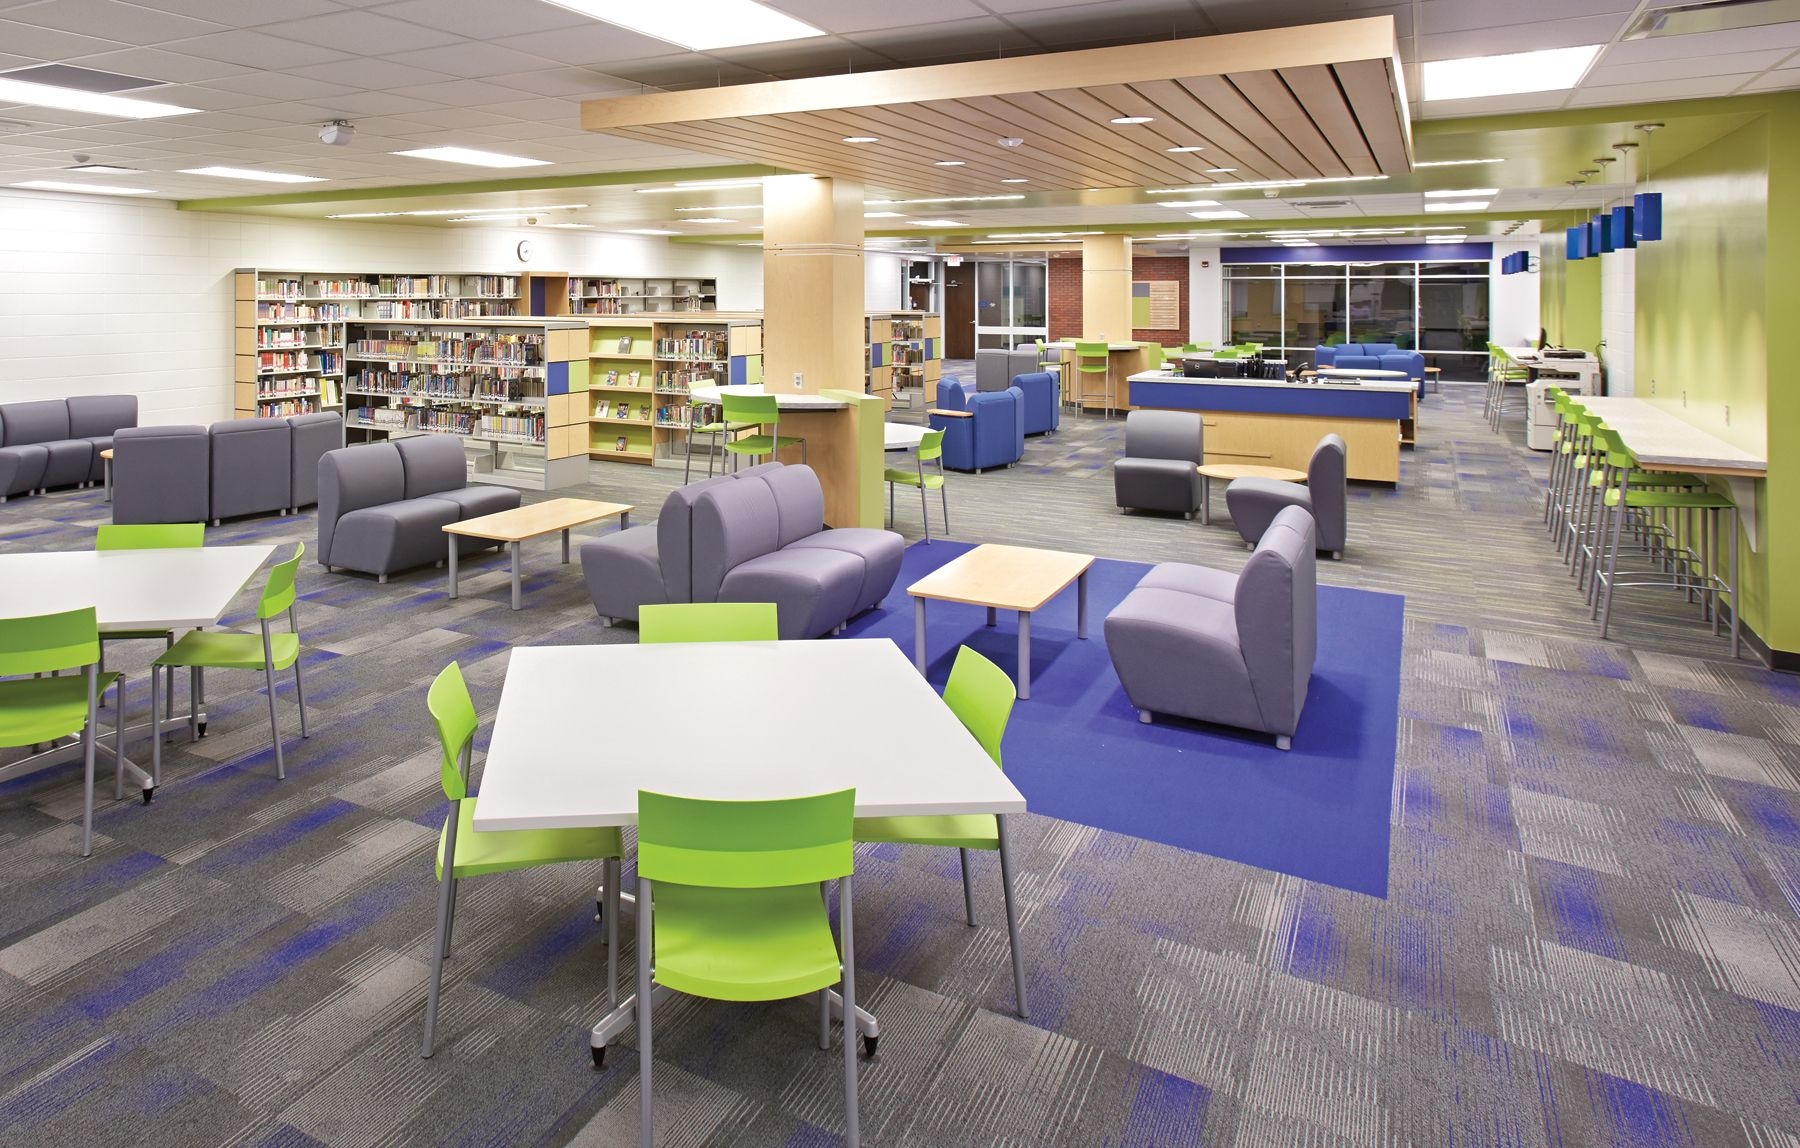 Pin On Library Decor